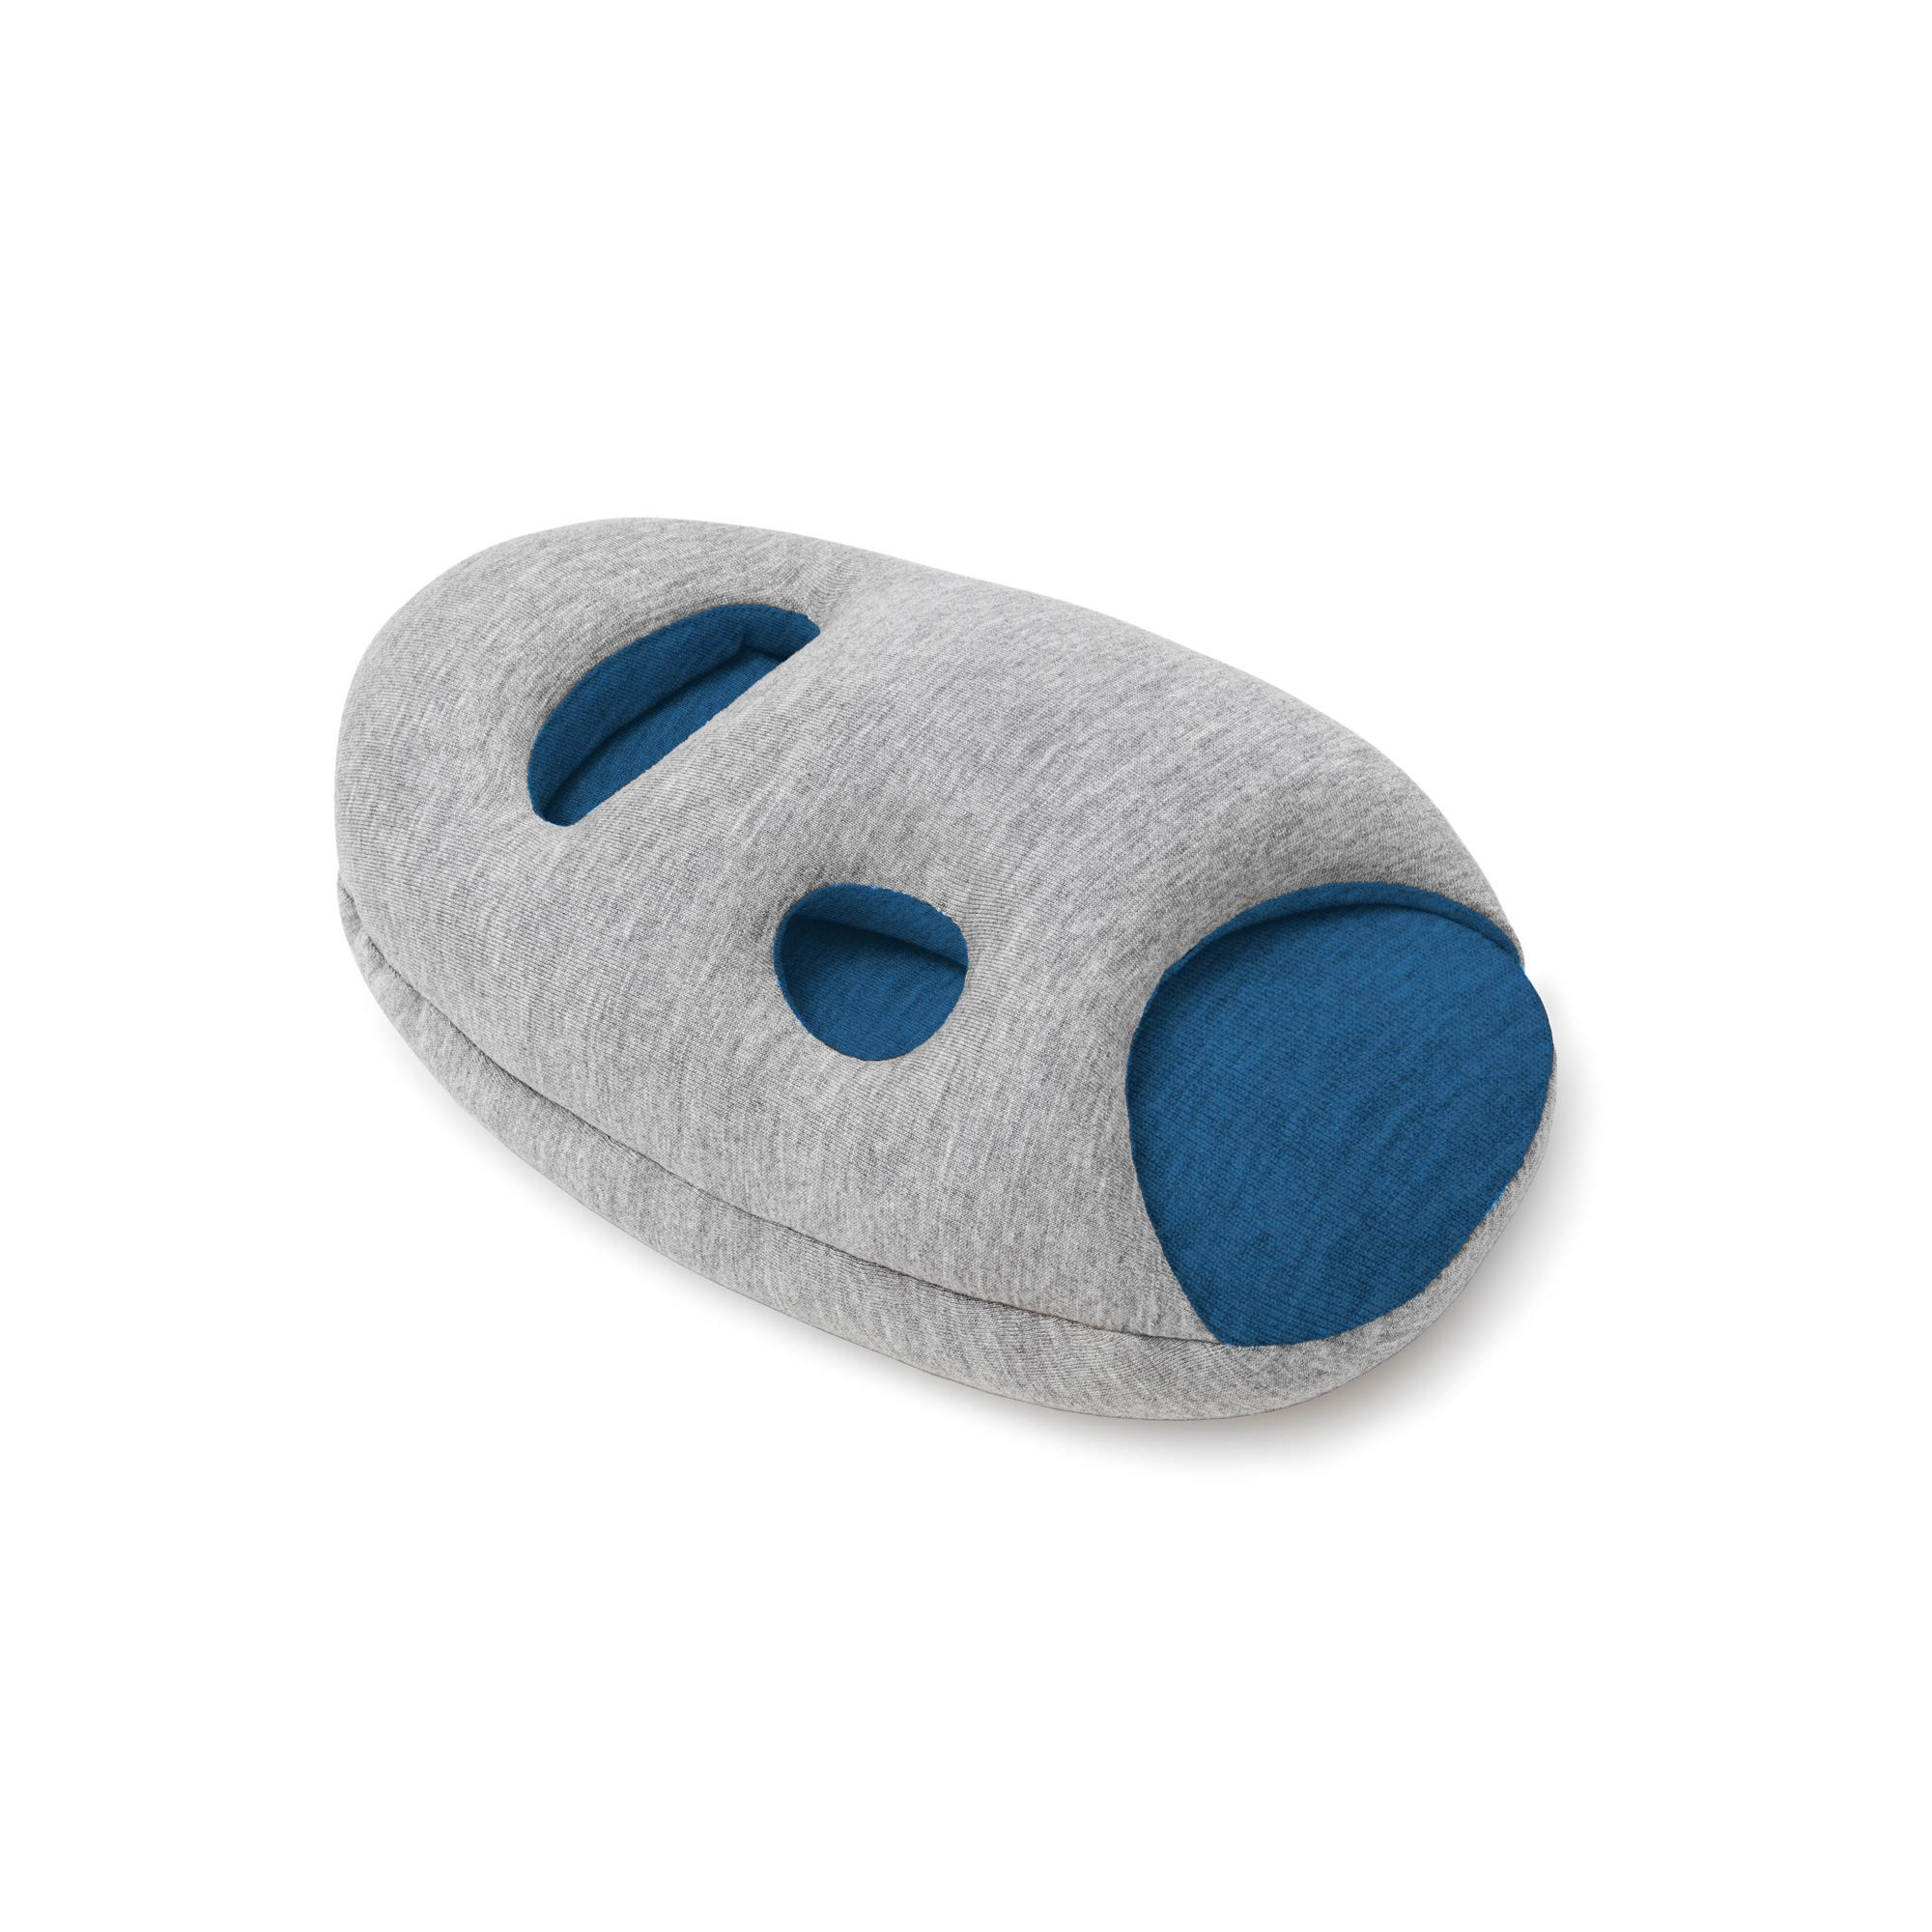 OSTRICH PILLOW MINI Travel Pillow for Airplane Head Support - Travel Accessories for Hand and Arm Rest, Power Nap on Flight and Desk - Sleepy Blue by OSTRICH PILLOW